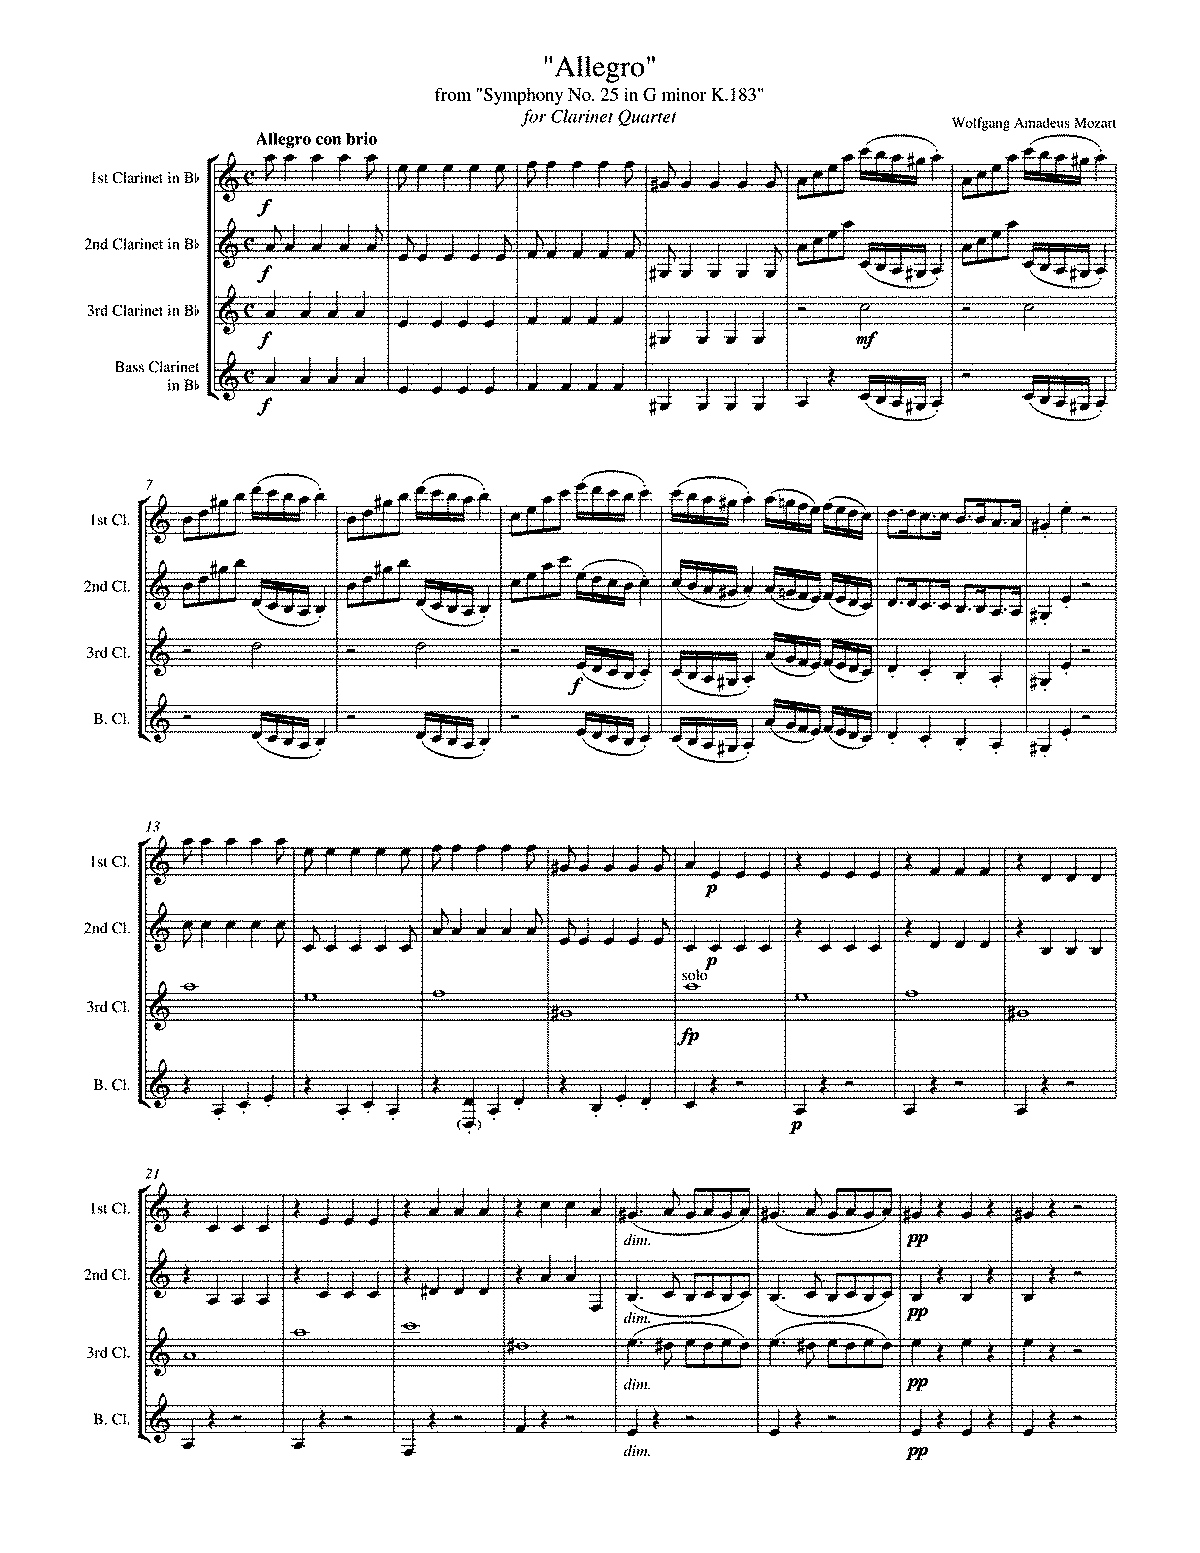 PMLP01544-Wolfgang Amadeus Mozart - Symphony No. 25 in G minor K. 183 for Clarinet Quartet.pdf